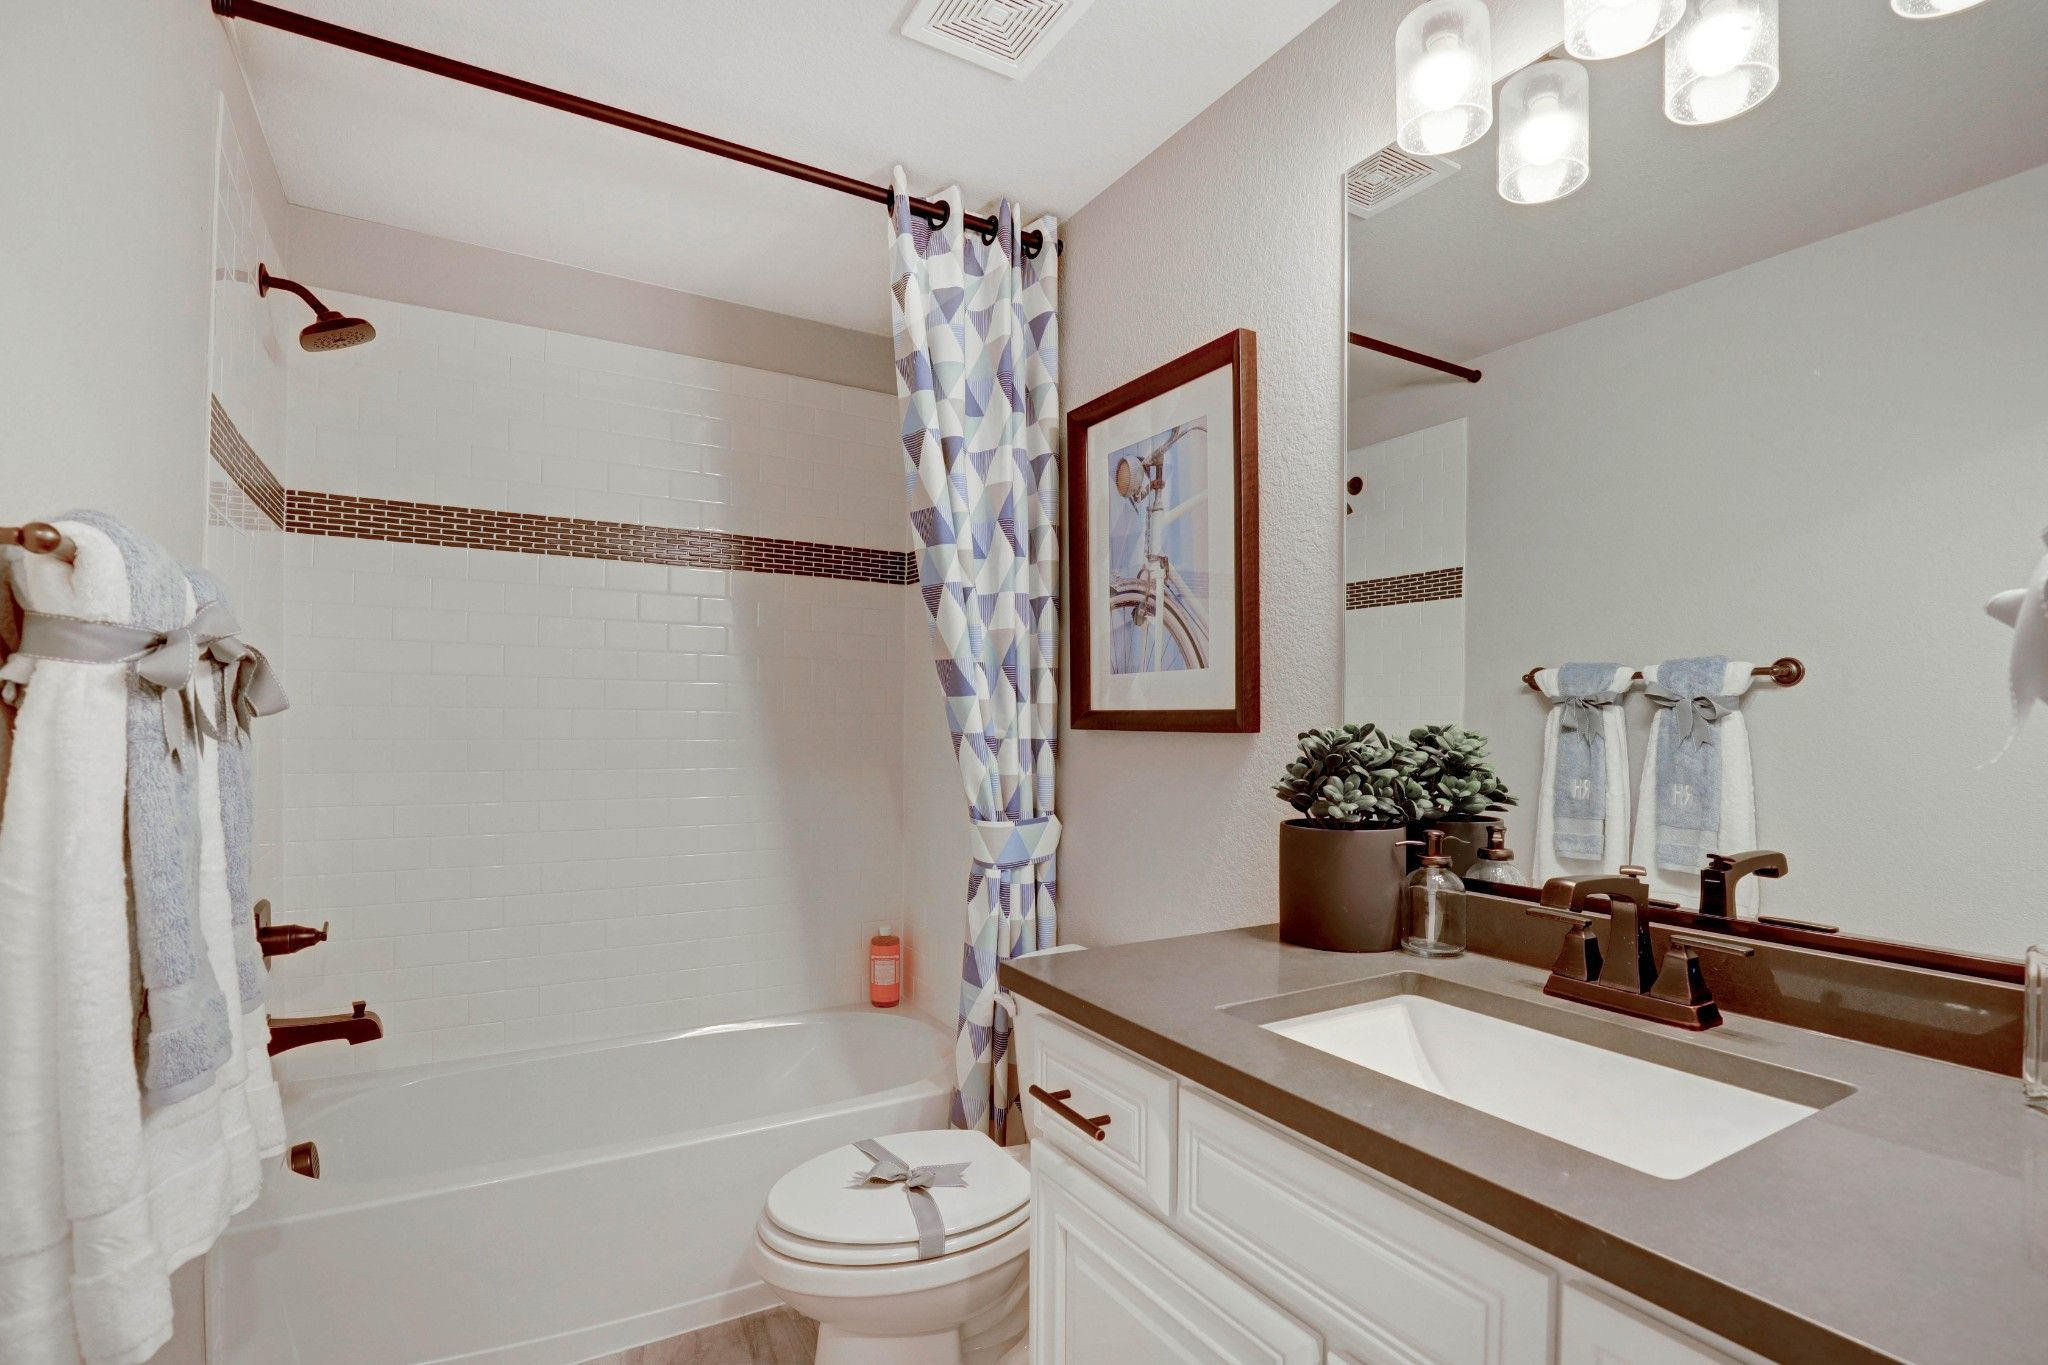 Bathroom featured in the Penrose - Saddler Ridge By RichfieldHomes in Fort Collins-Loveland, CO